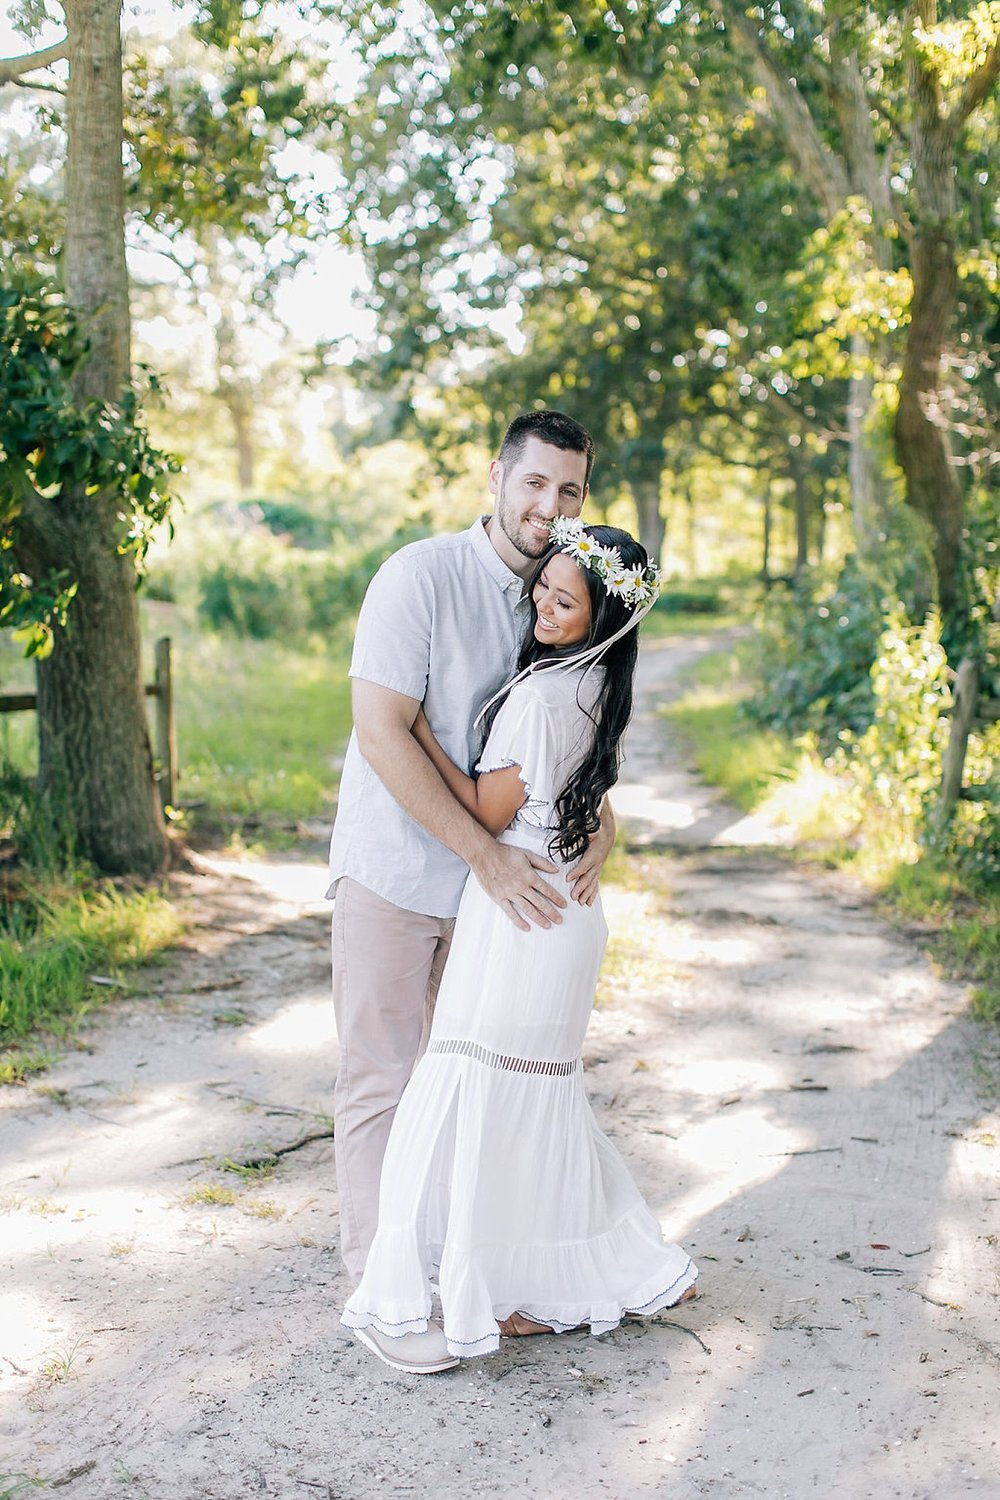 An Airy Summer Engagement Session at Willow Creek Winery in Cape May, NJ by Magdalena Studios_0005.jpg